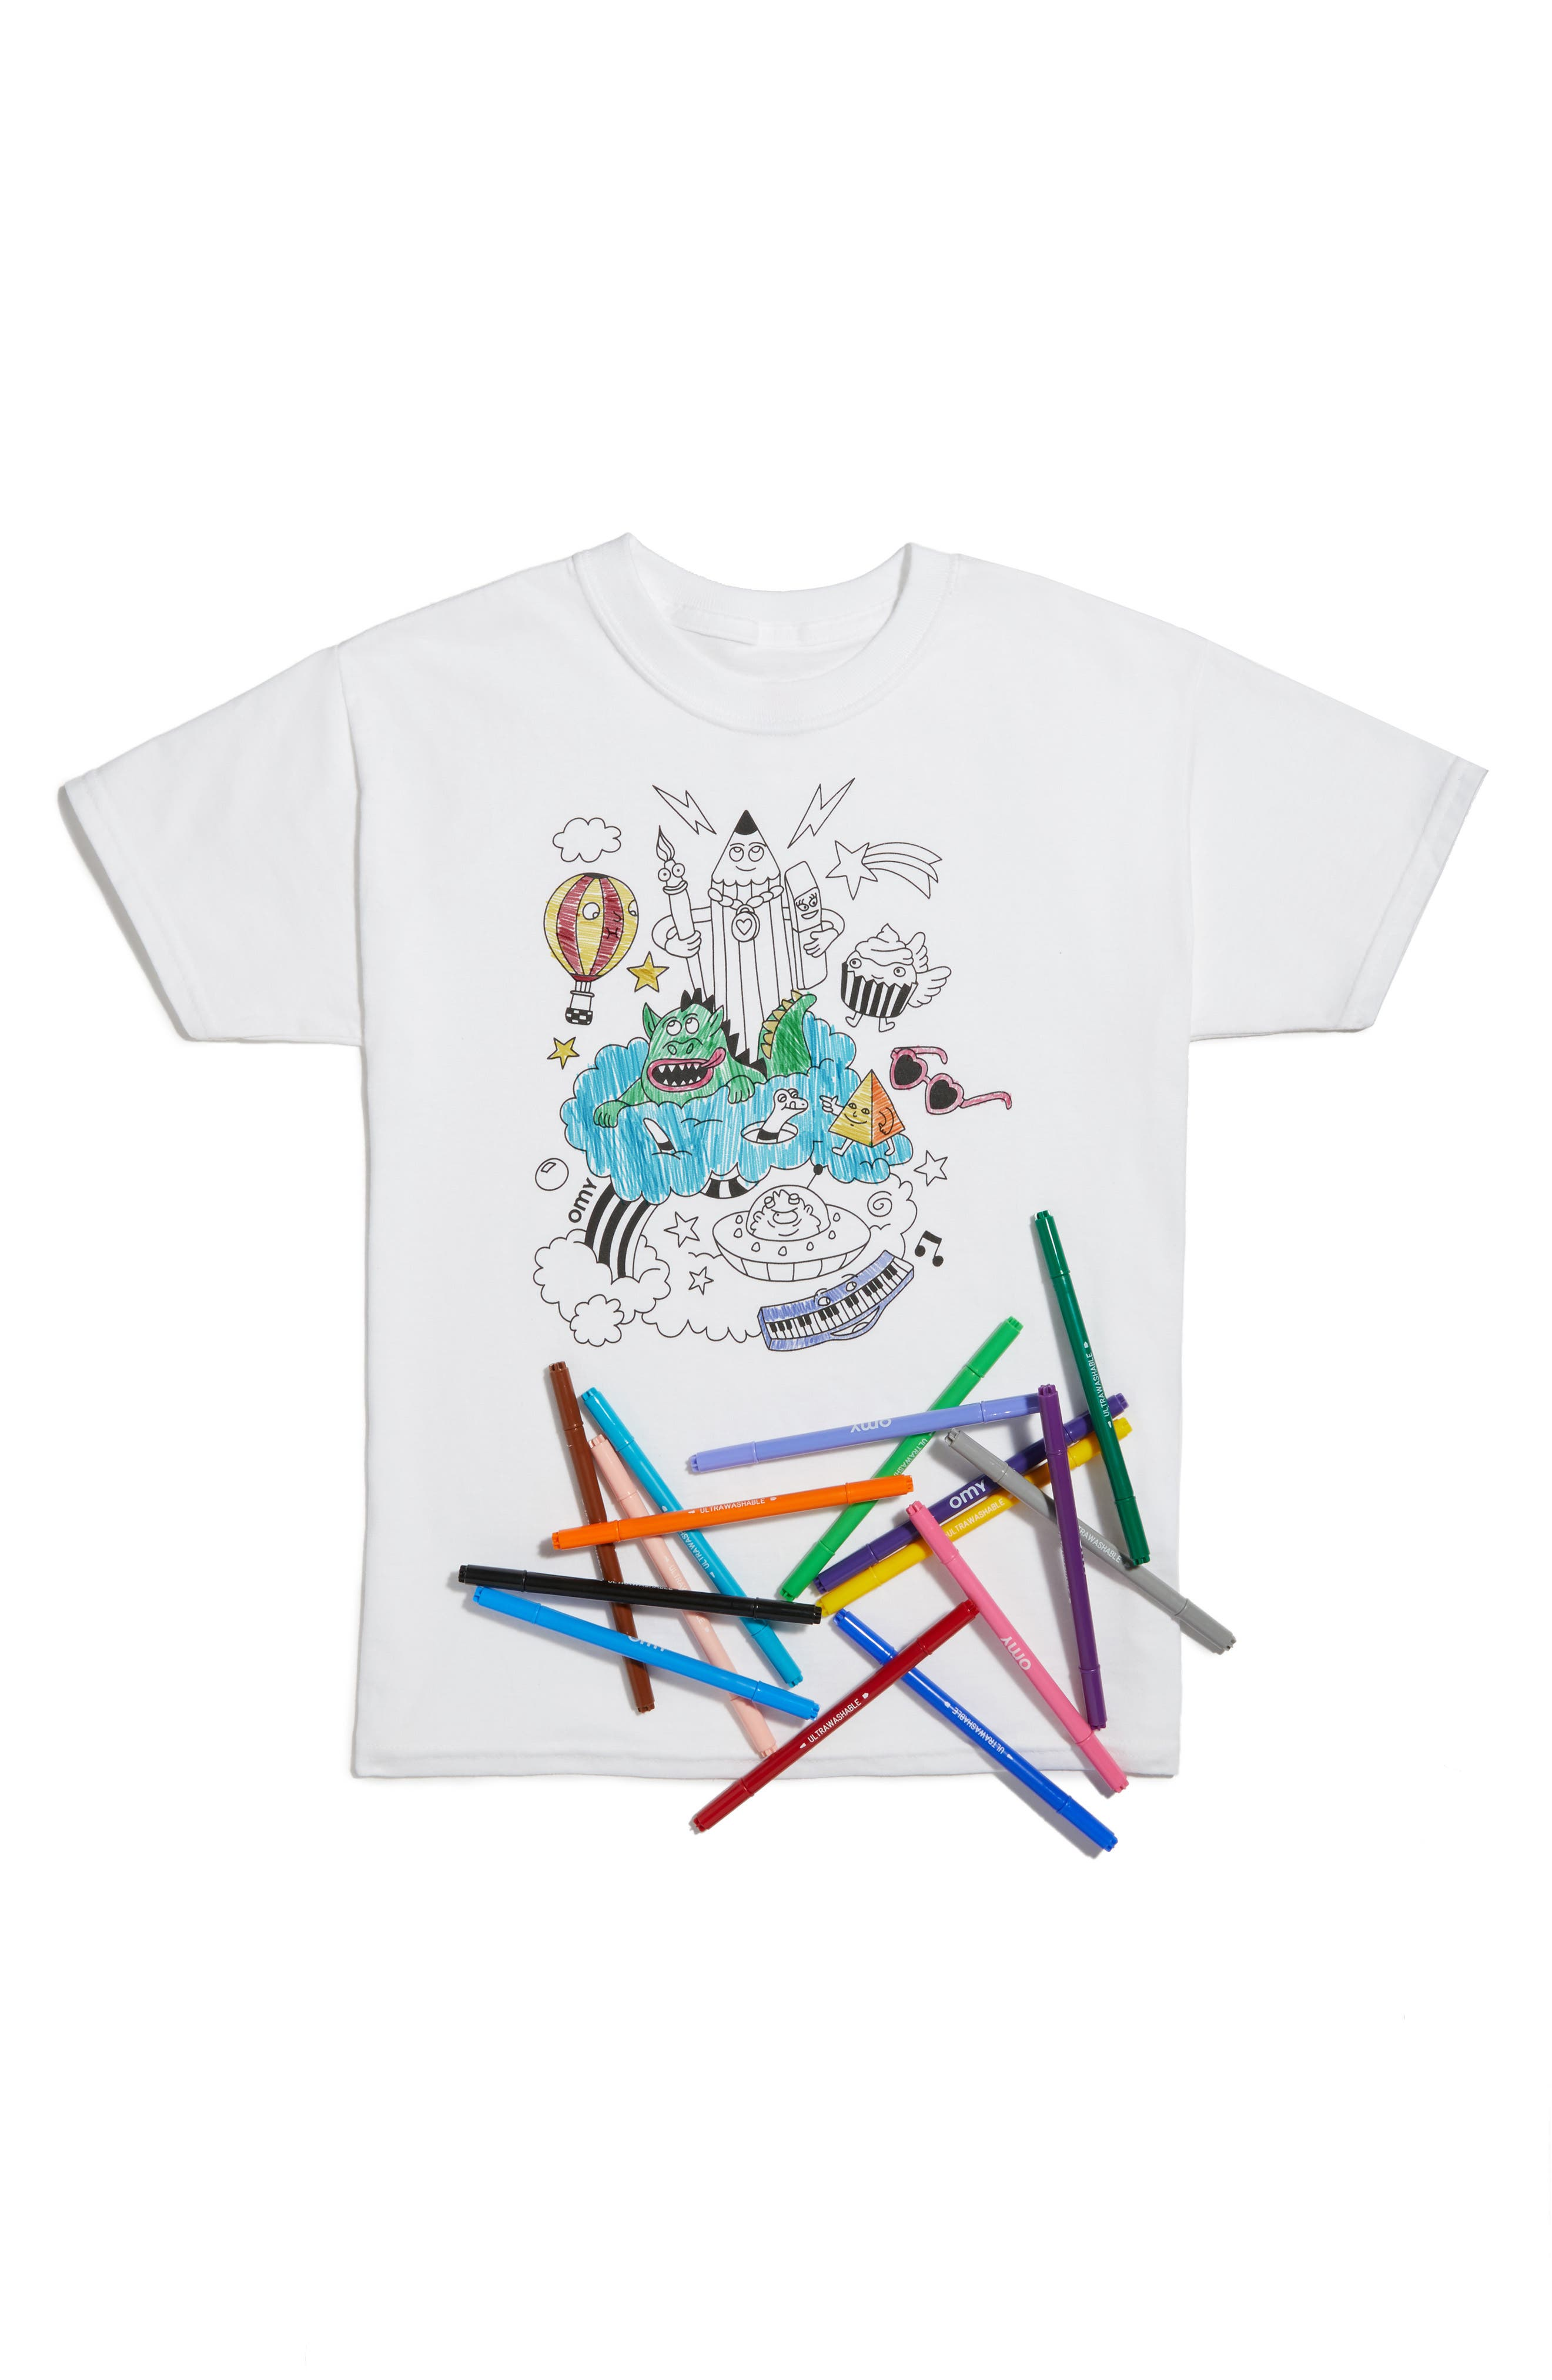 OMY Fantastic Graphic T-Shirt & Colored Markers Set (Kids)